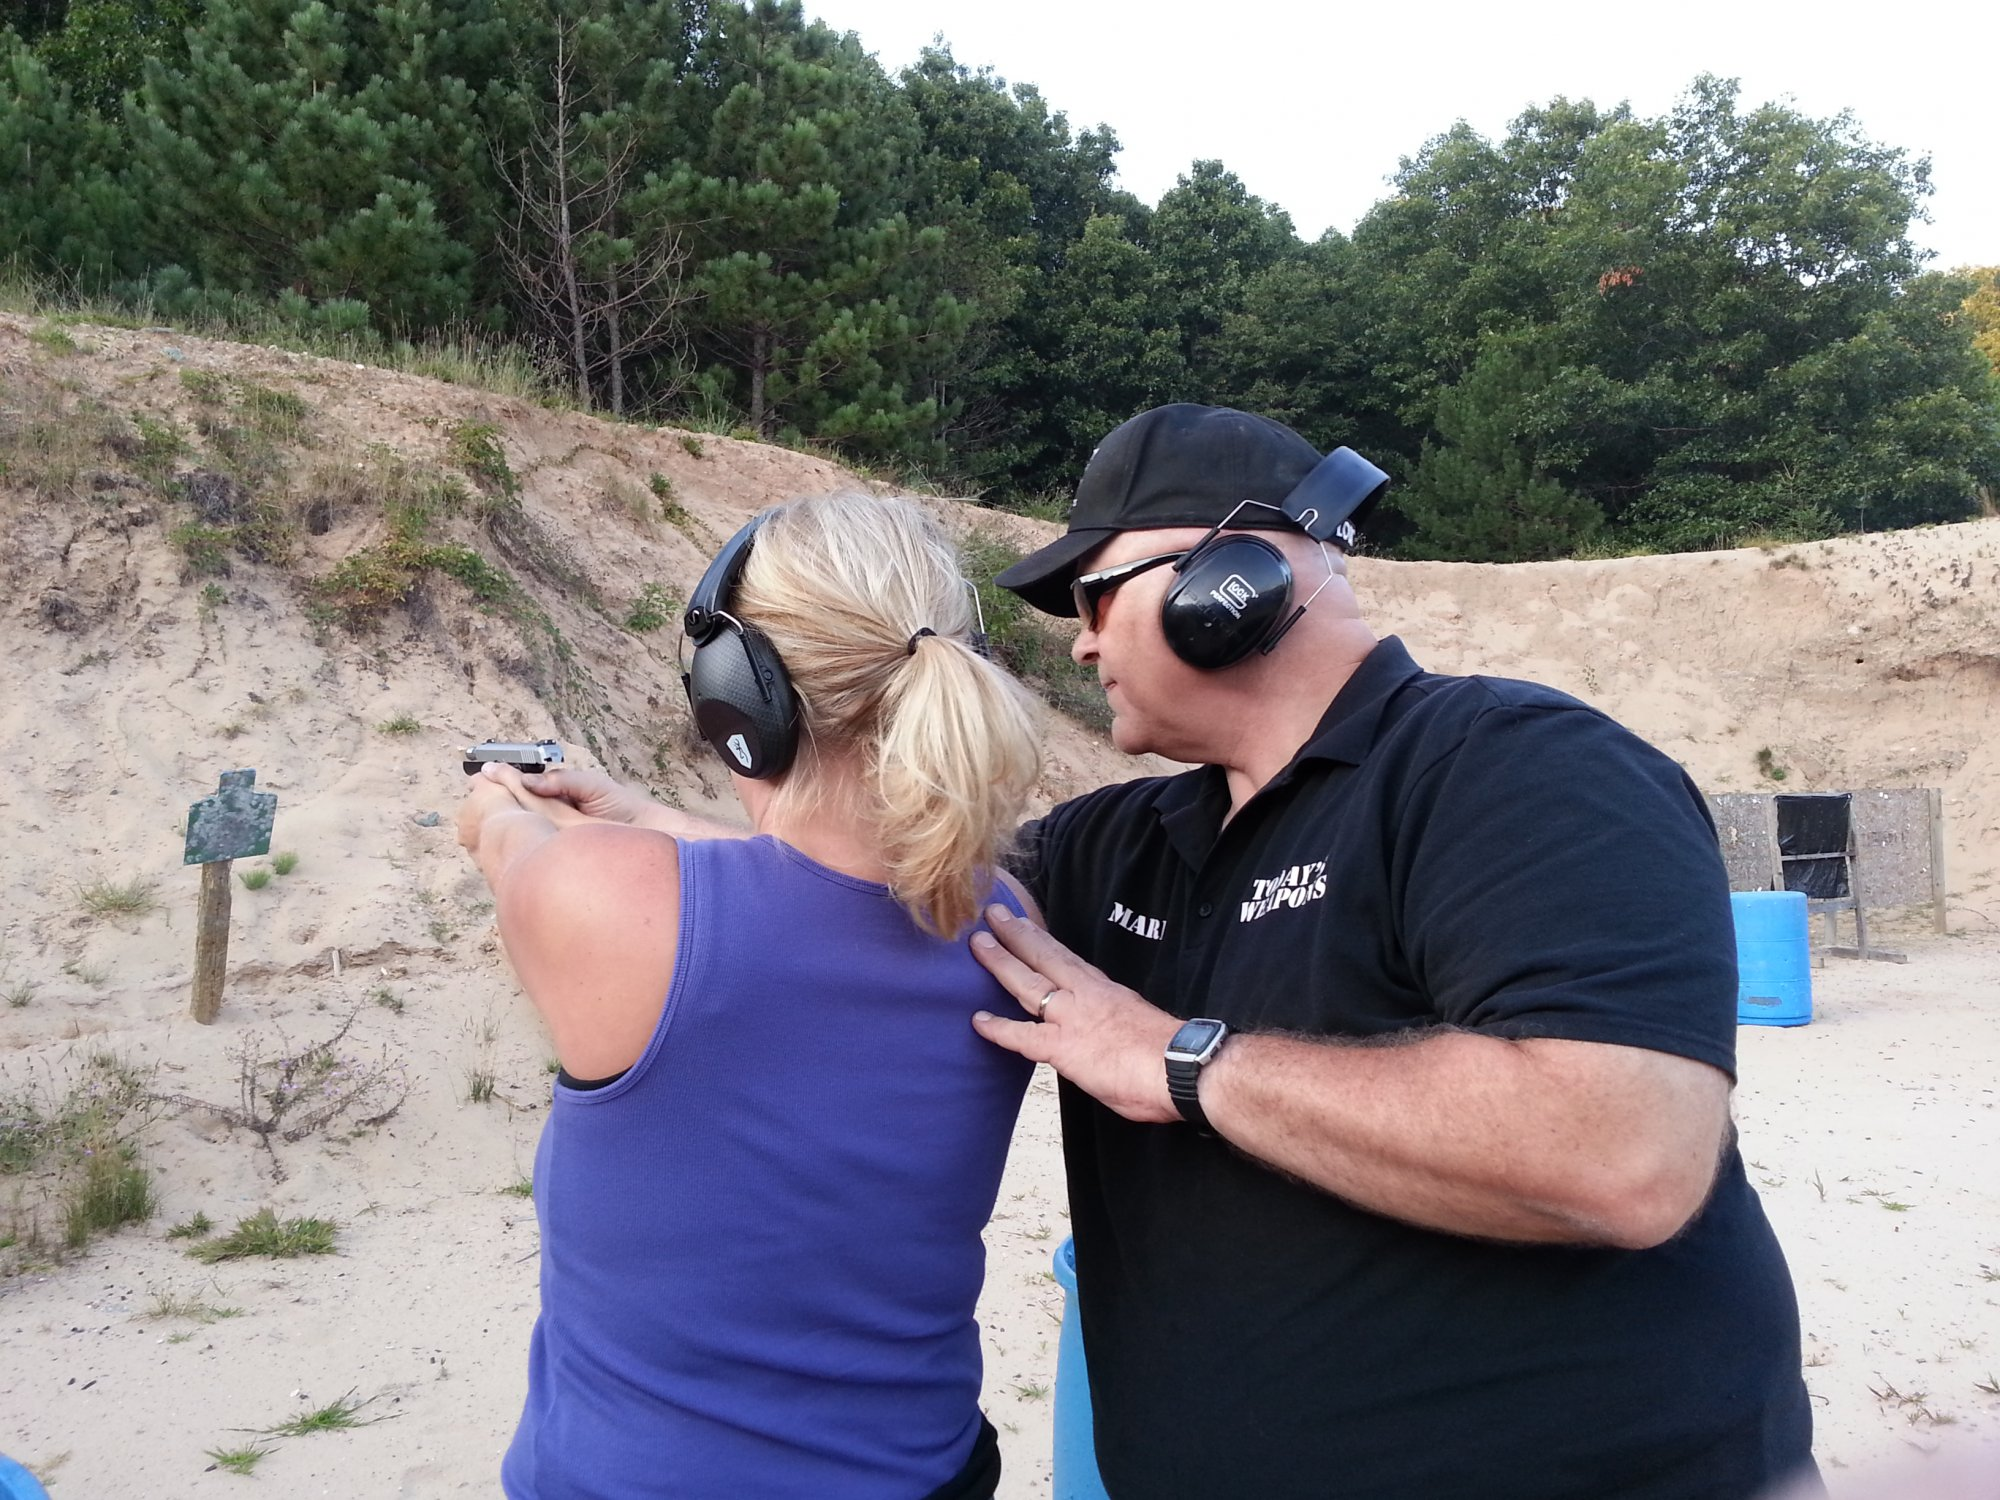 CPL/CCW, Firearms and Tactical Training | Today's Weapons